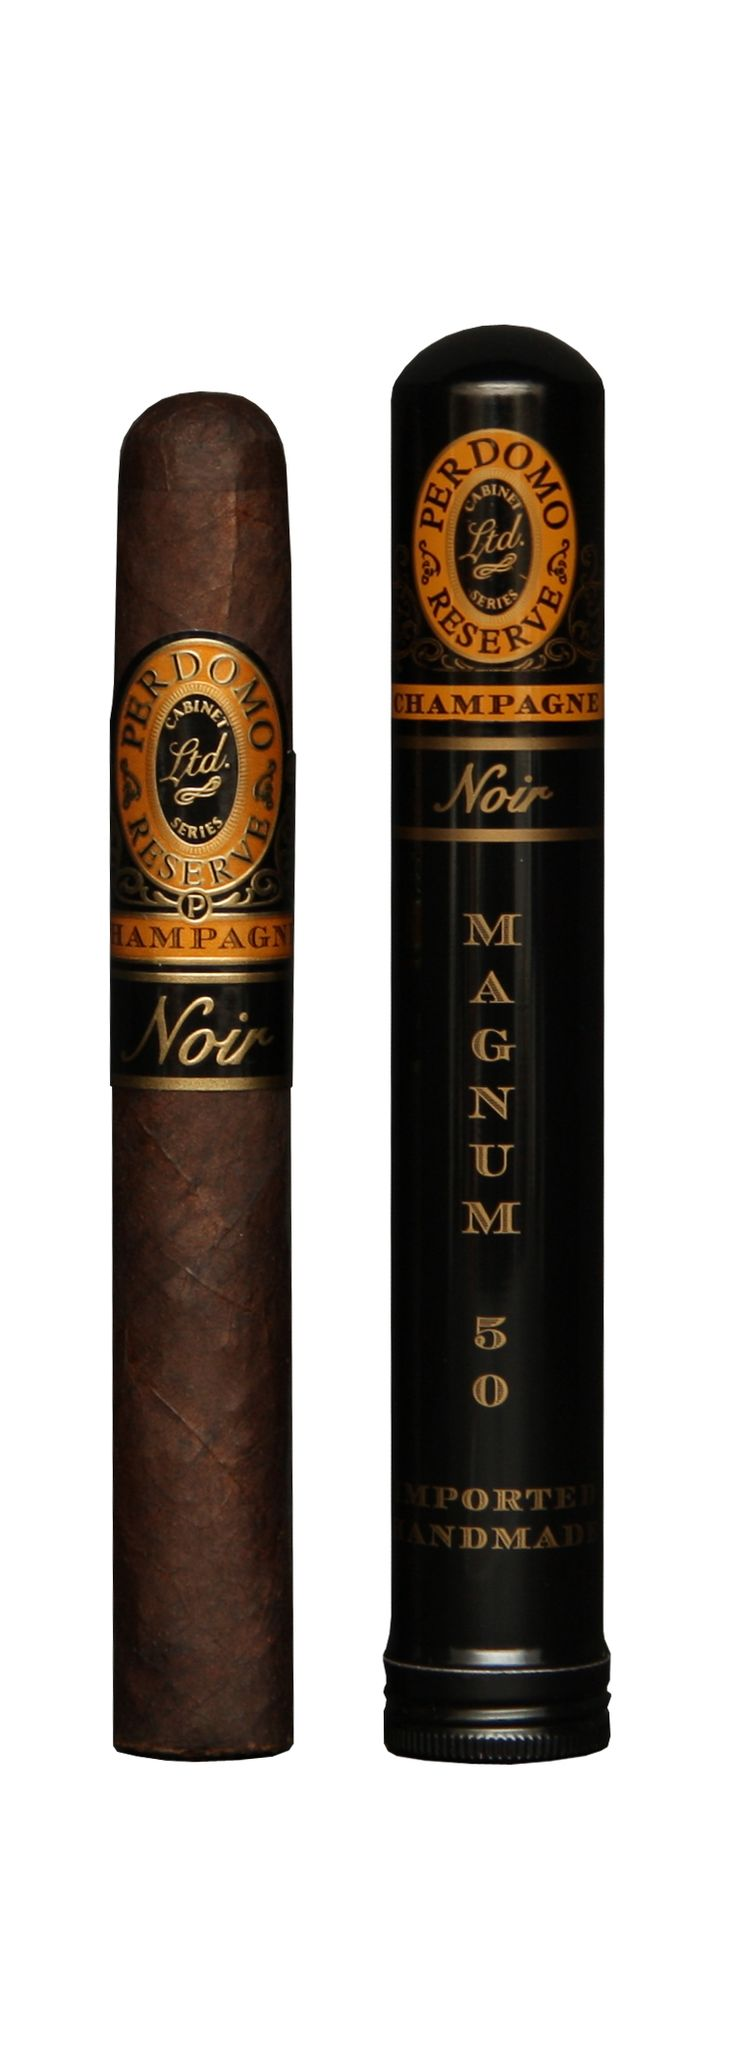 Perdomo Champagne Noir Tubo cigar to go with your spirit?